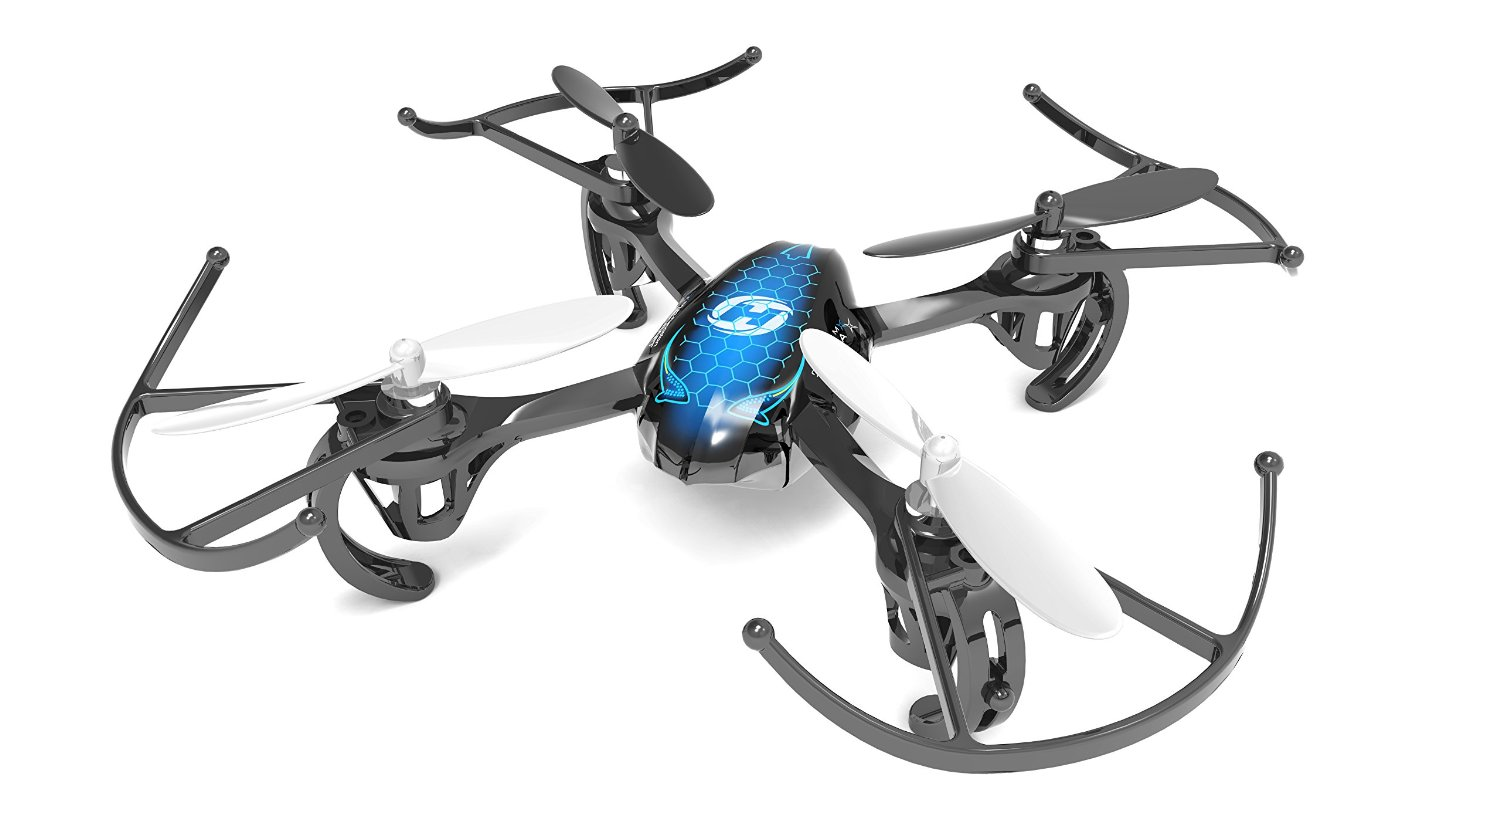 fly a mini rc helicopter with Hubsan X4 H107l Quadcopter on Regulations also 4 as well Rc Helicopter Toys as well P Rm7323r in addition Best Rc Helicopter Kits.